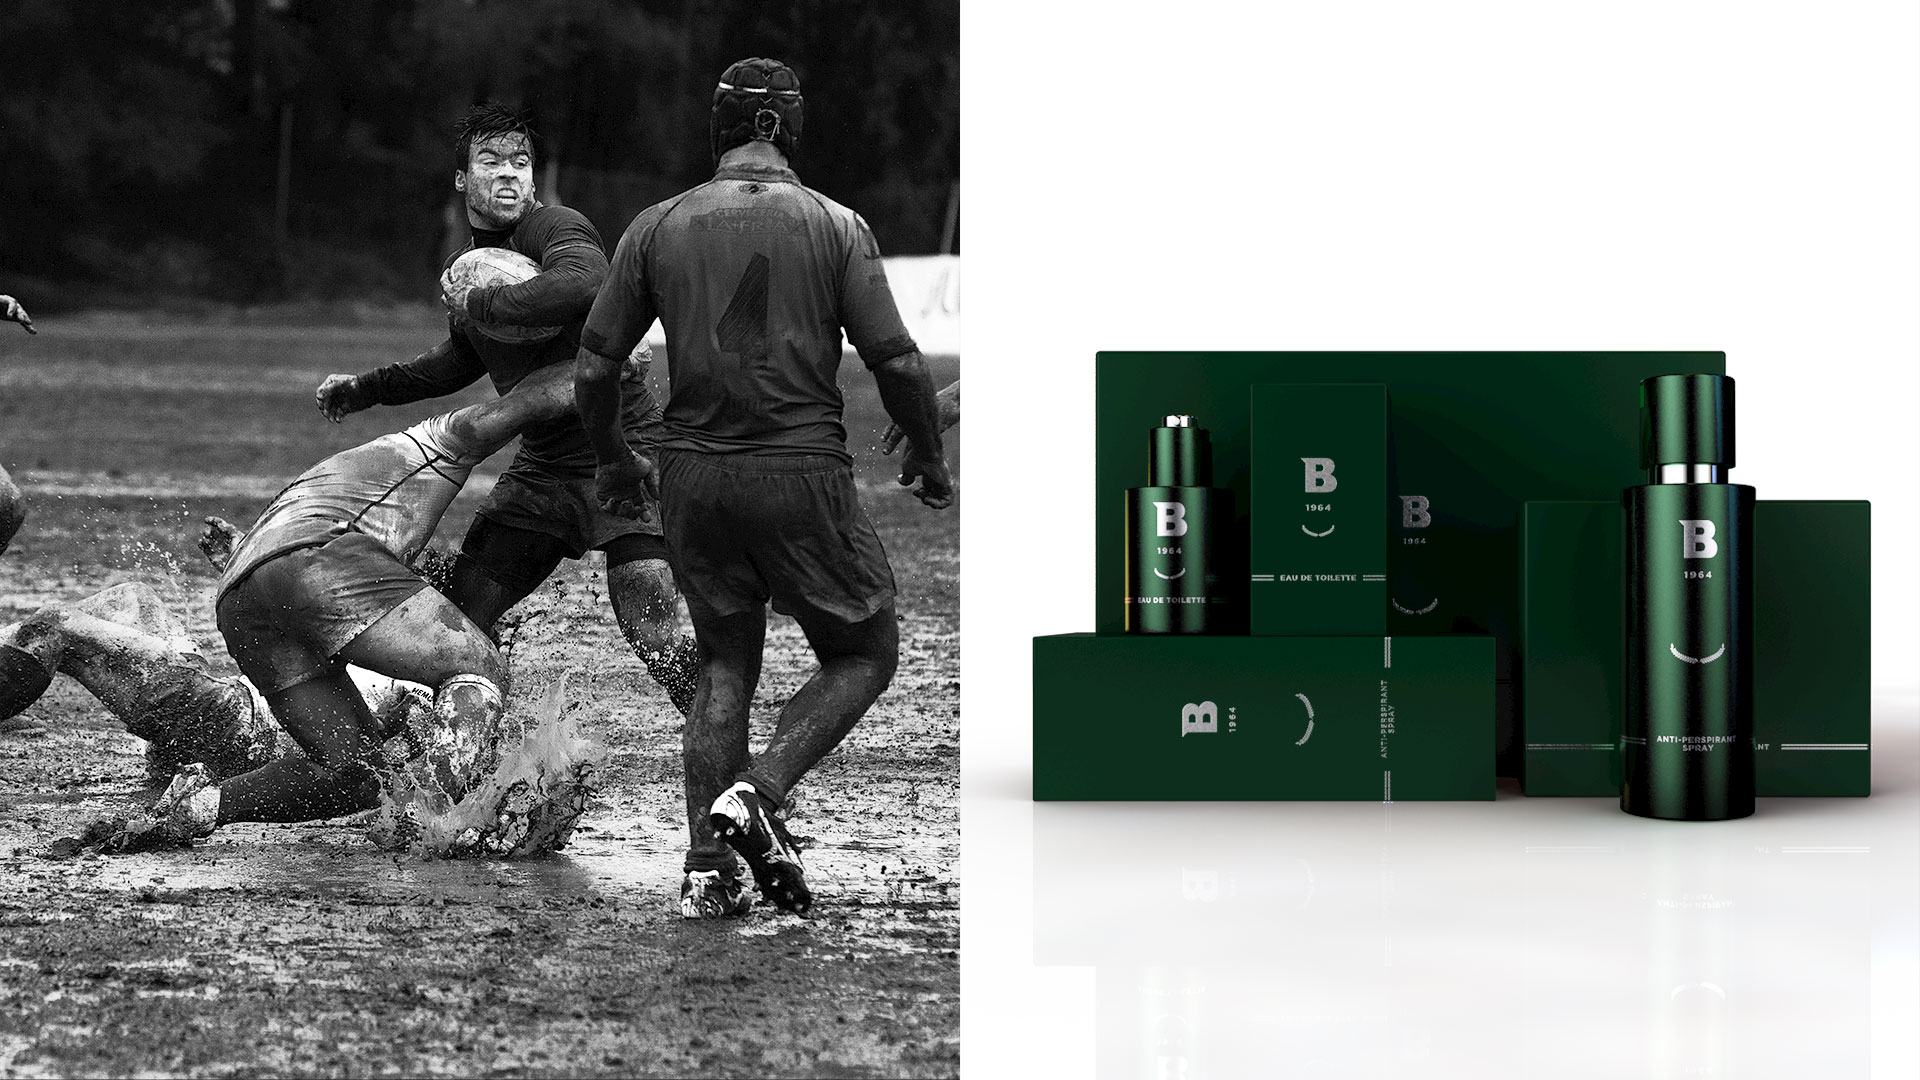 Match de rugby et packagings B1964 par Isuklo